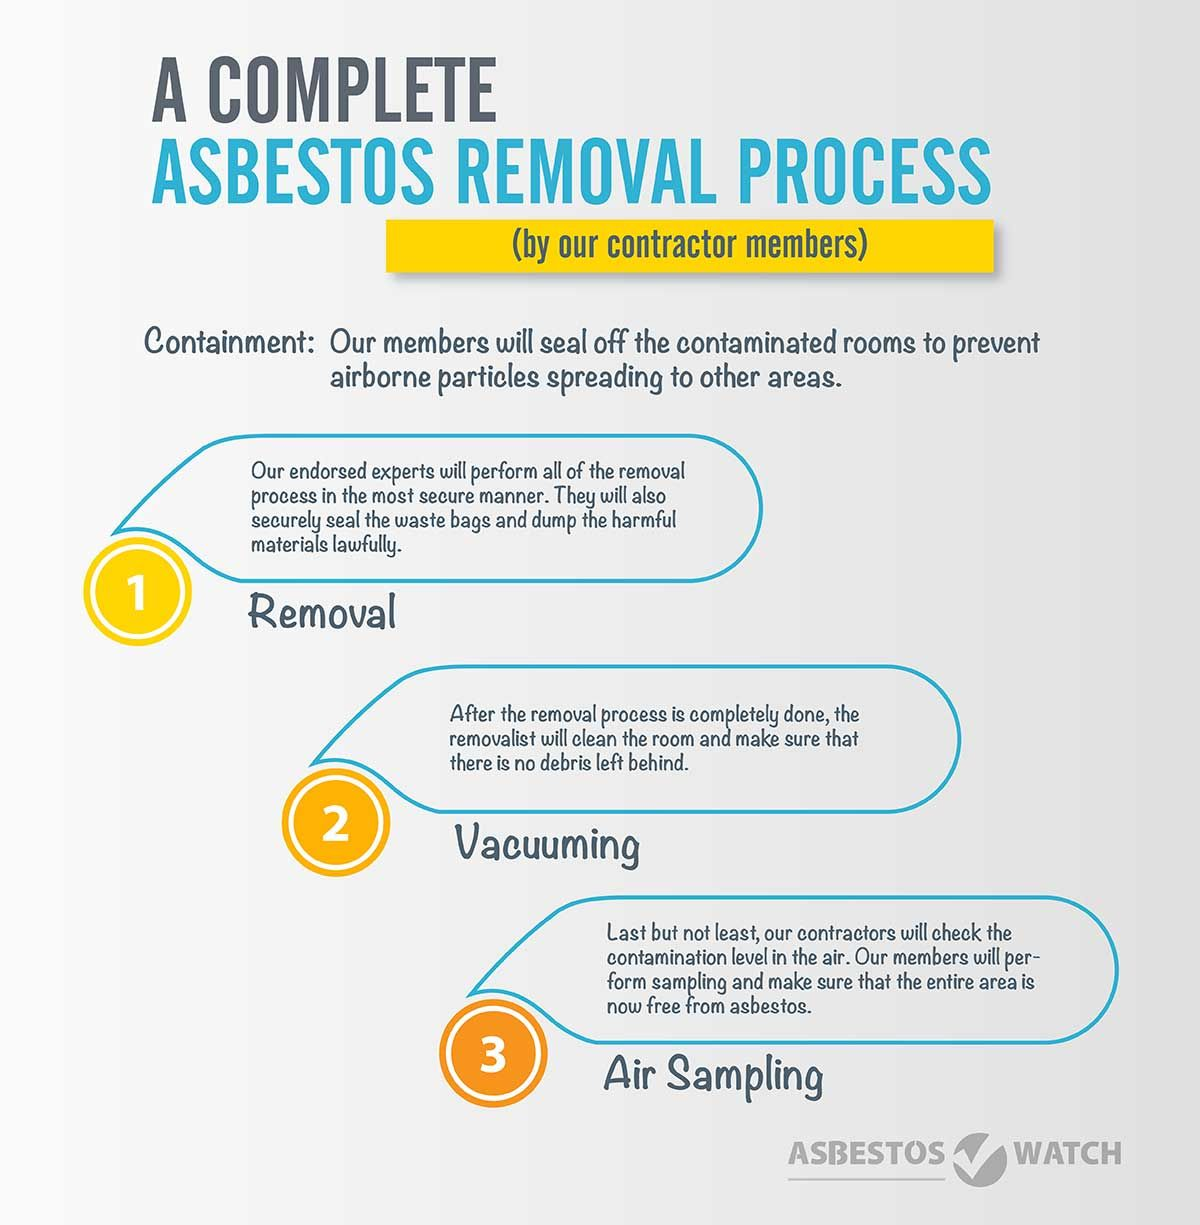 How much should you worry about asbestos asbestos pinterest how much should you worry about asbestos solutioingenieria Choice Image